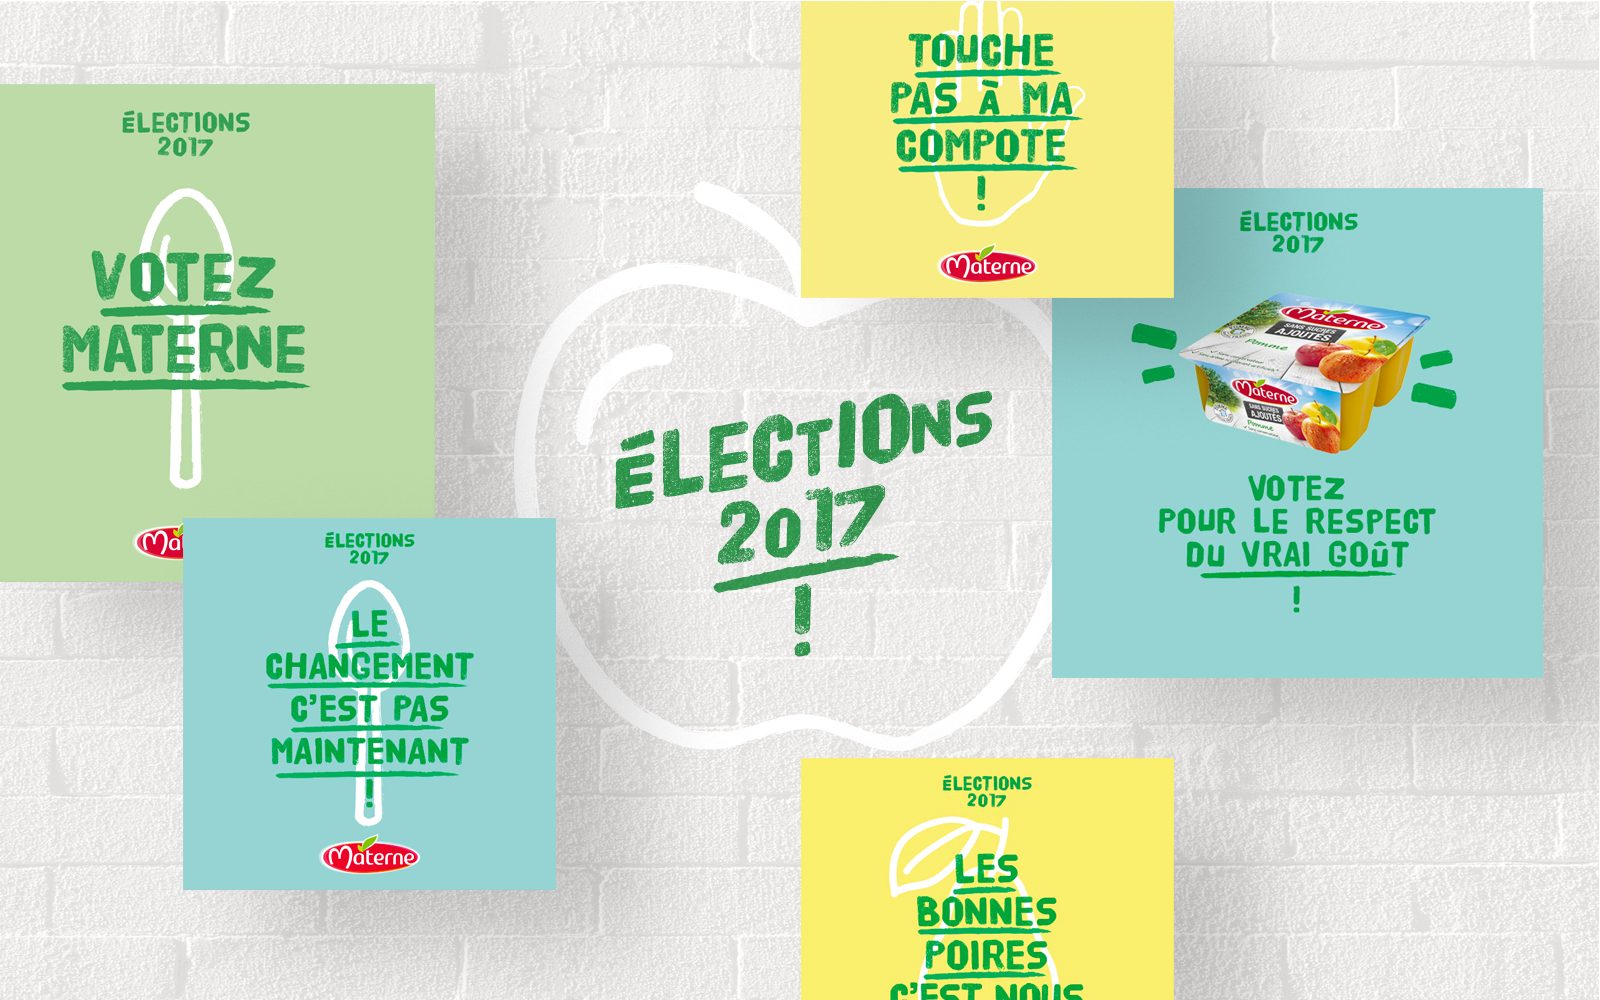 materne elections campagne